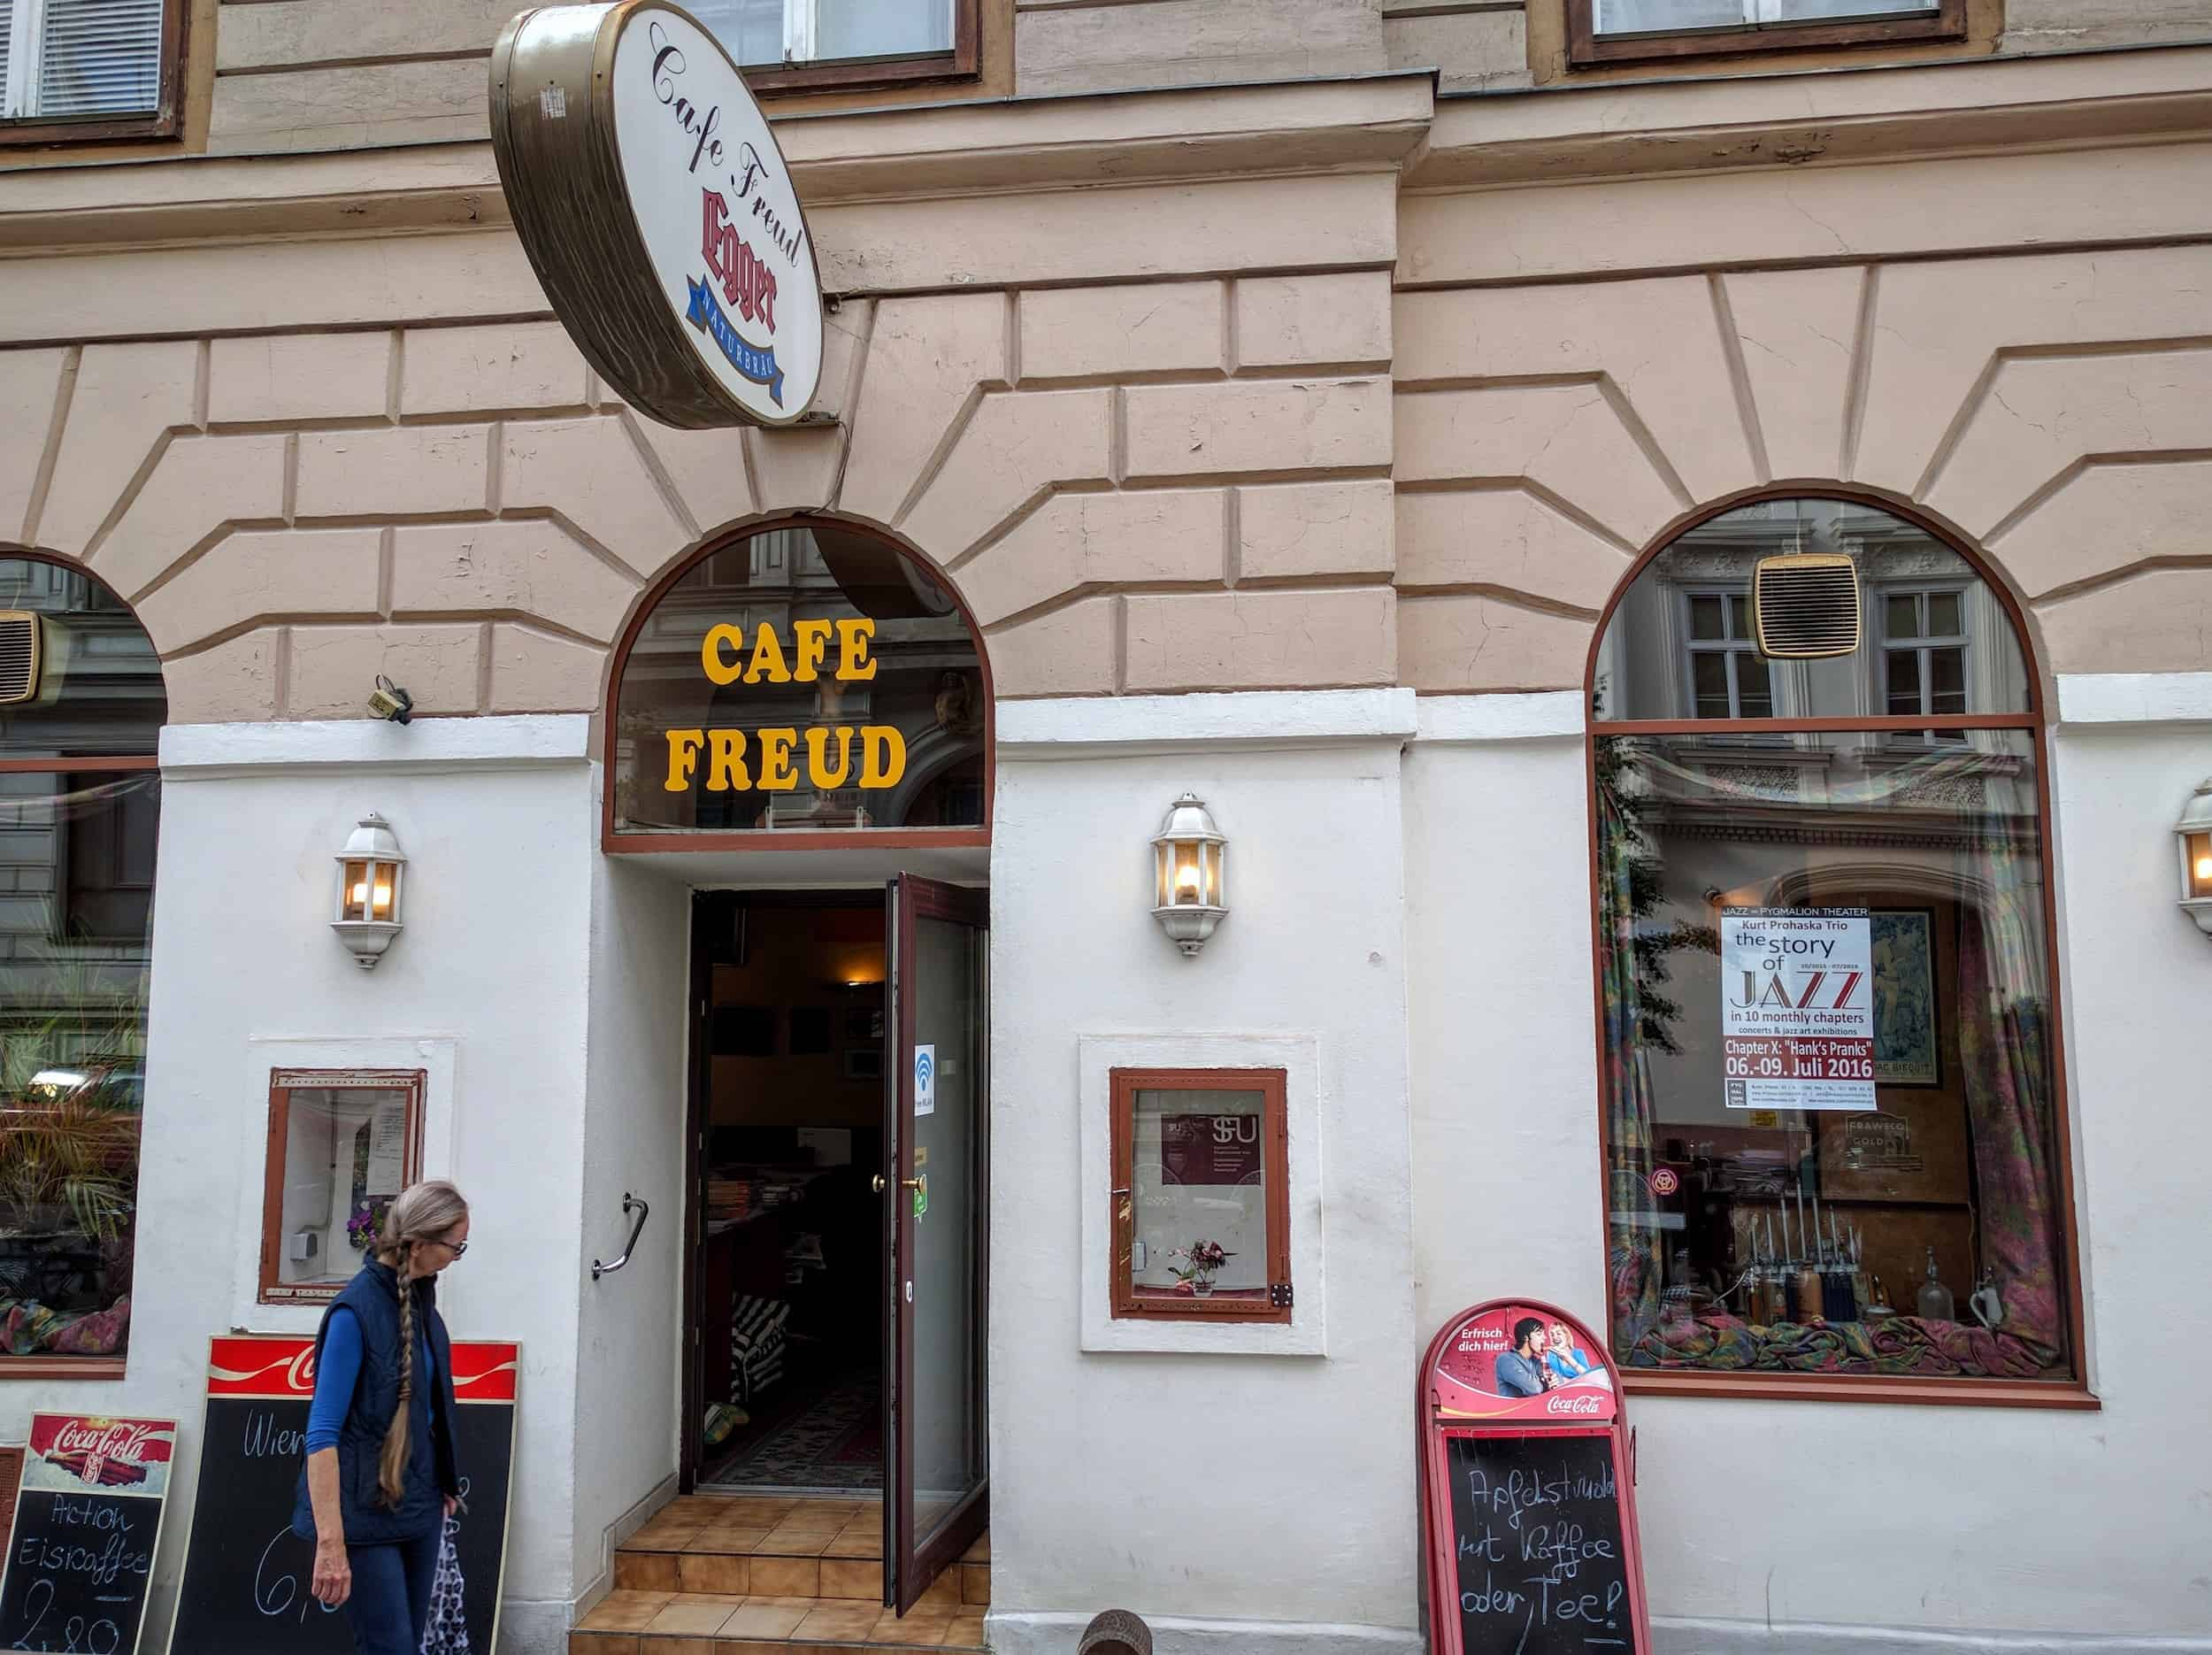 Entrance to the Cafe Freud.